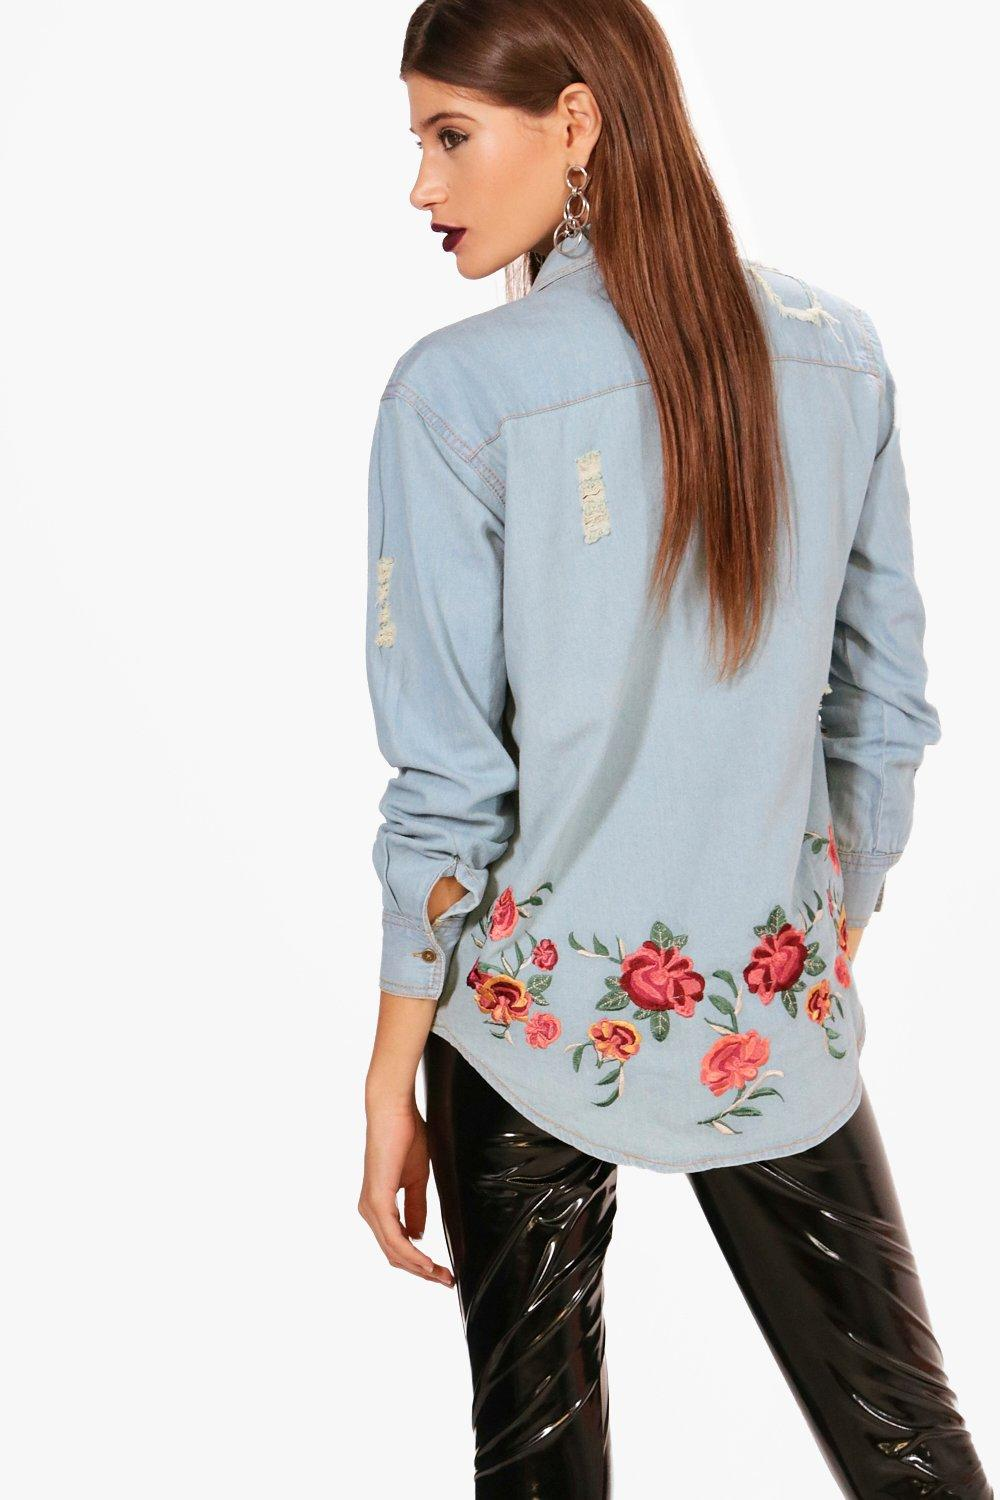 Denim Embroidered Back Shirt Back blue Embroidered fdtwqYtx